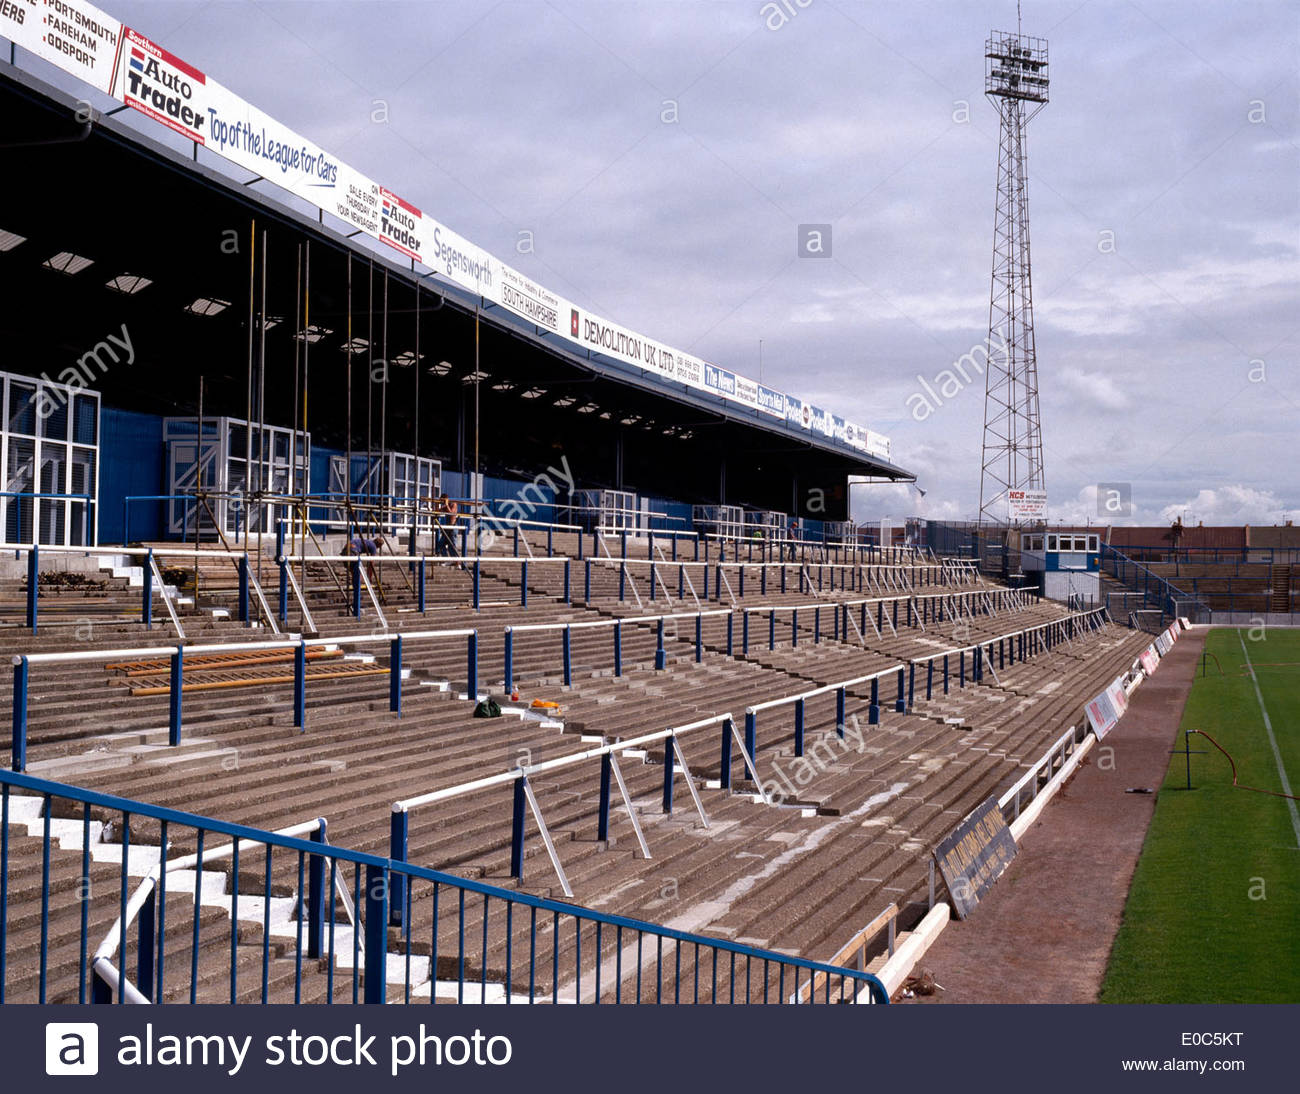 Terrace Rake Stanchions Scaffolding At Fratton Park The Home Of Portsmouth Football Club